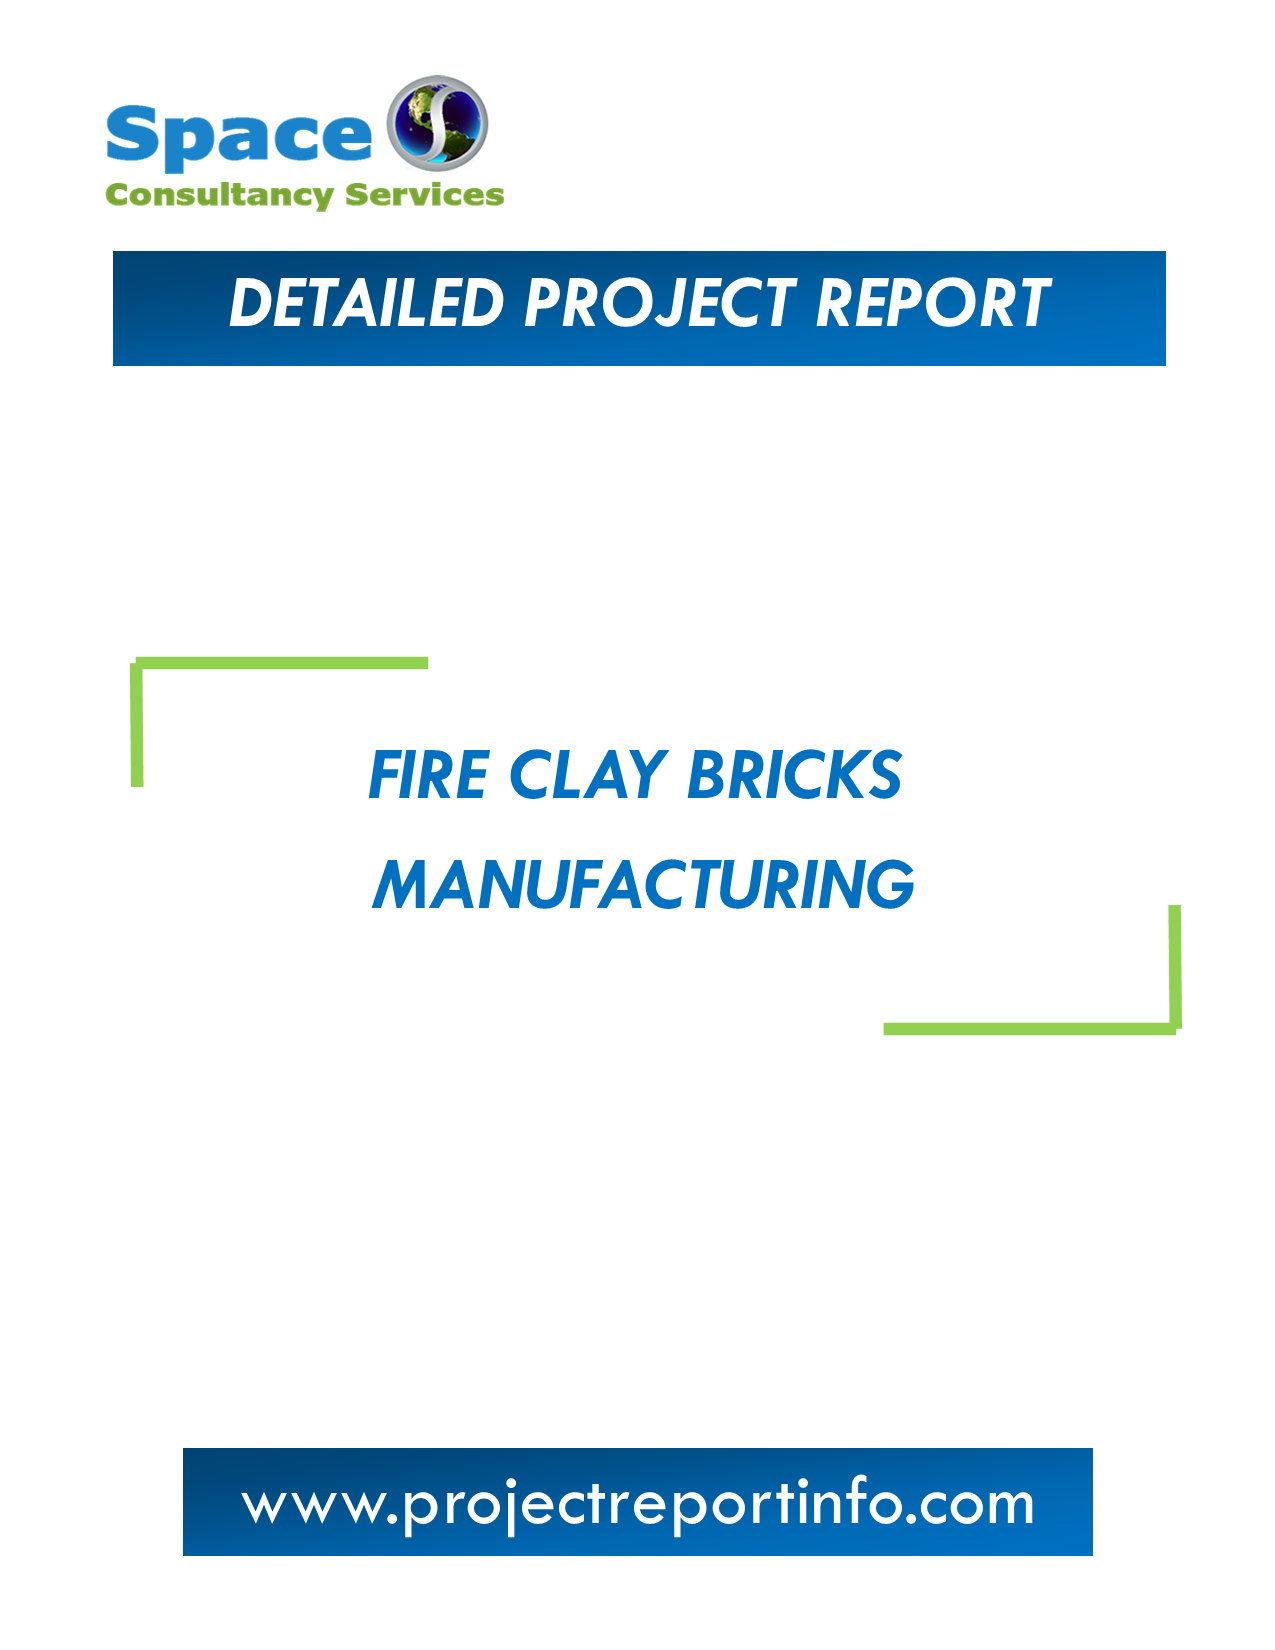 Project Report on Fire Clay Bricks Manufacturing